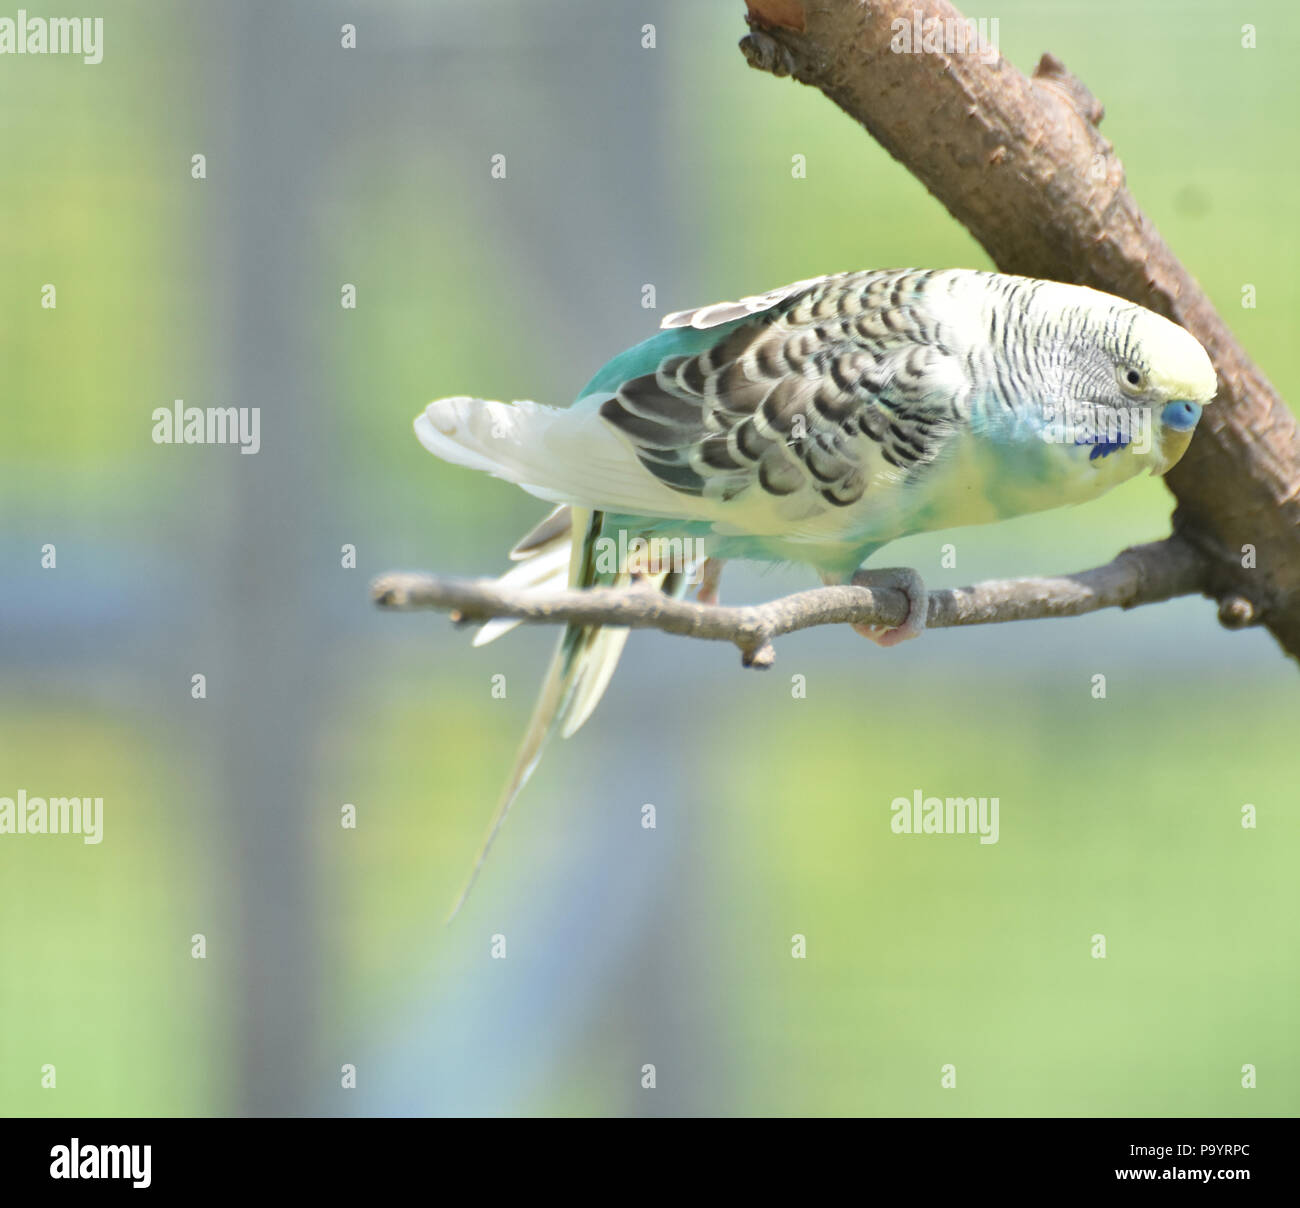 Pretty pastel budgie balancing on a tree perch. - Stock Image